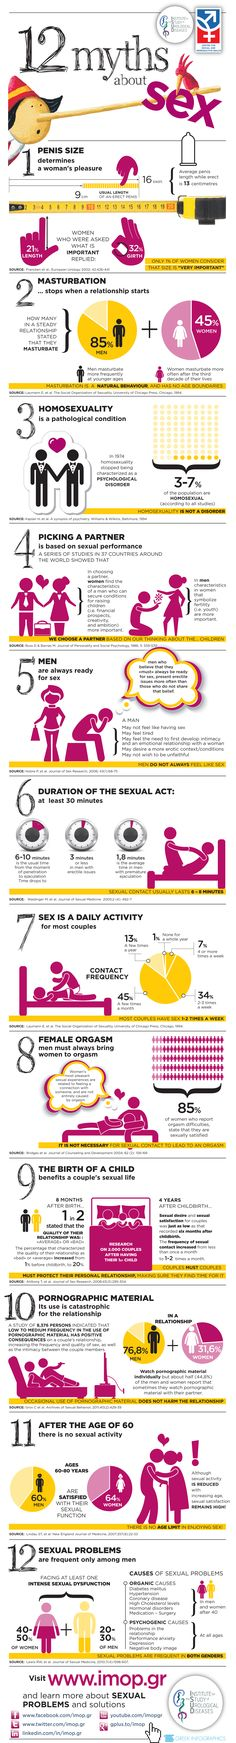 12 Myths about sex by The Institute for the Study of Urologic Diseases (ISUD)